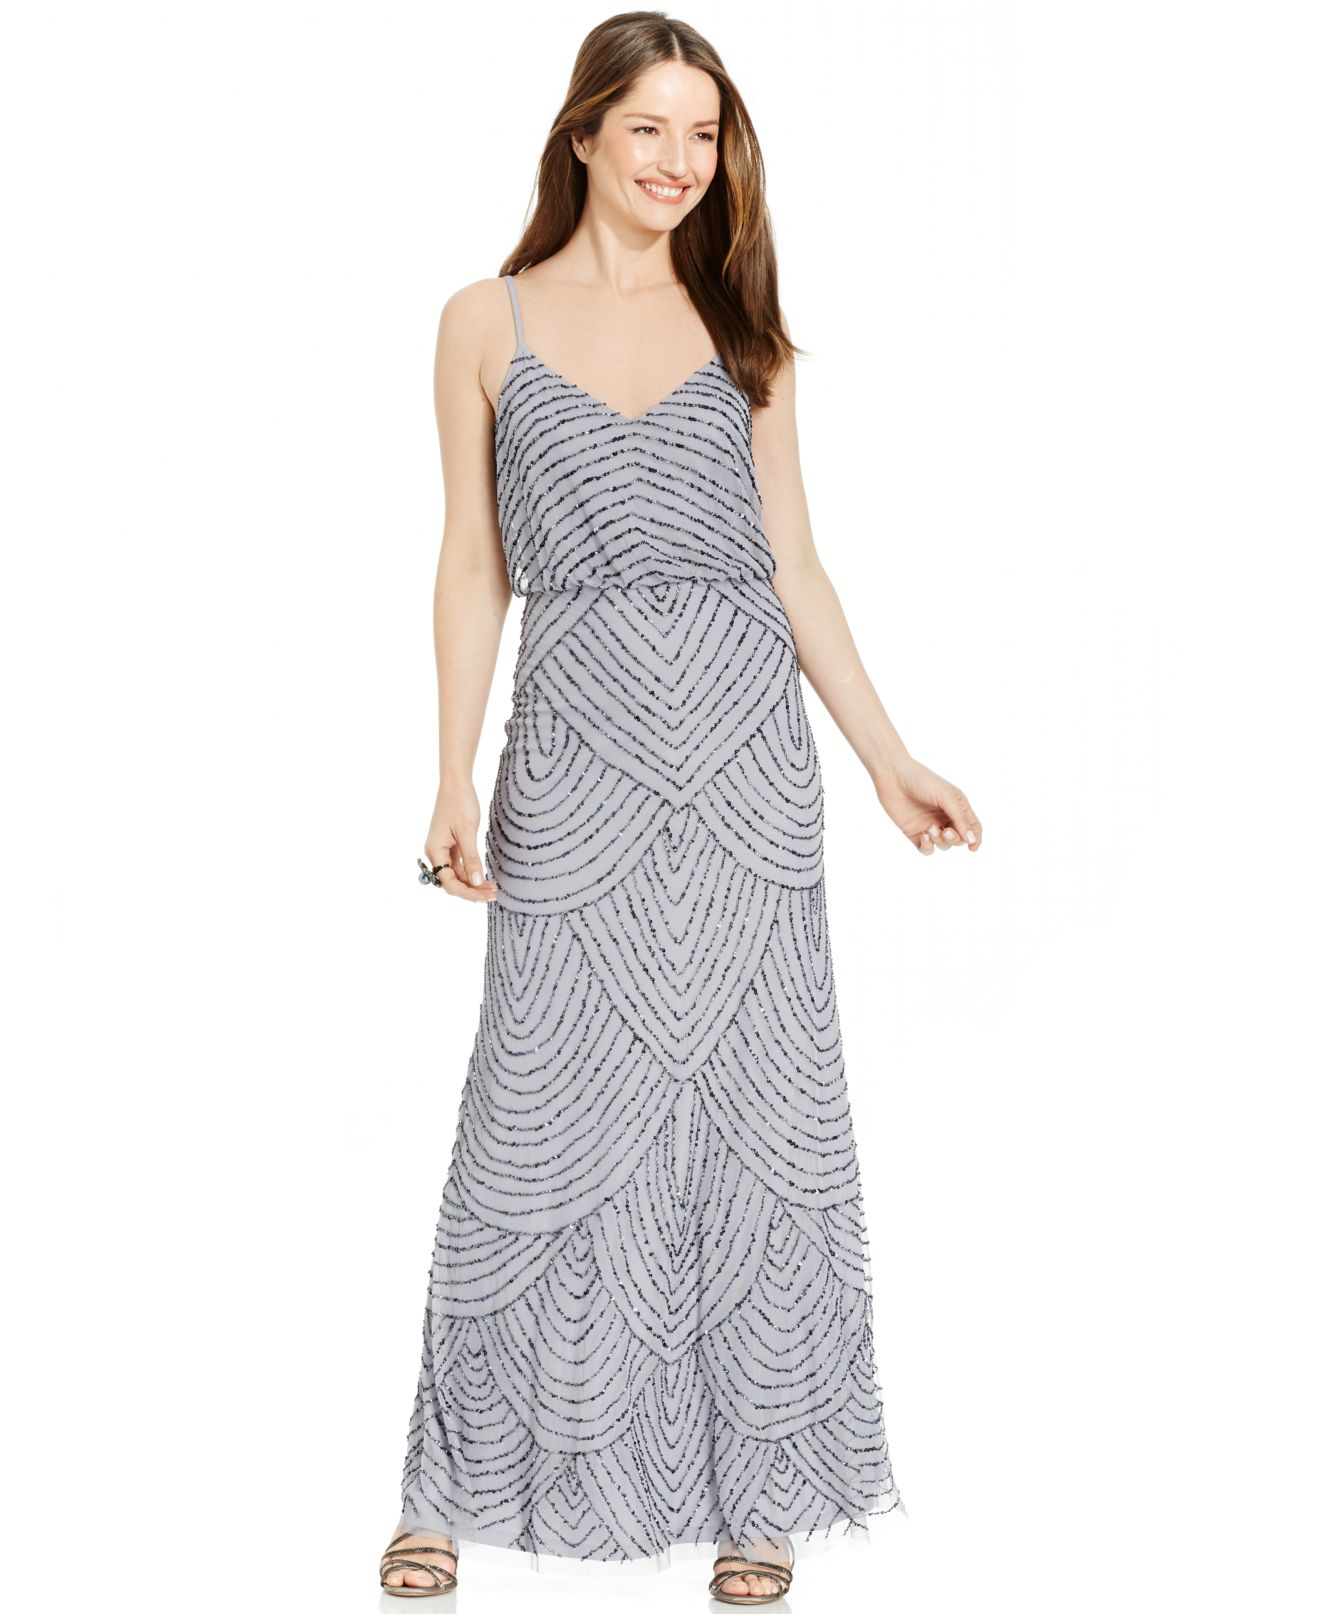 Lyst - Adrianna Papell Petite Beaded Blouson Gown in Metallic